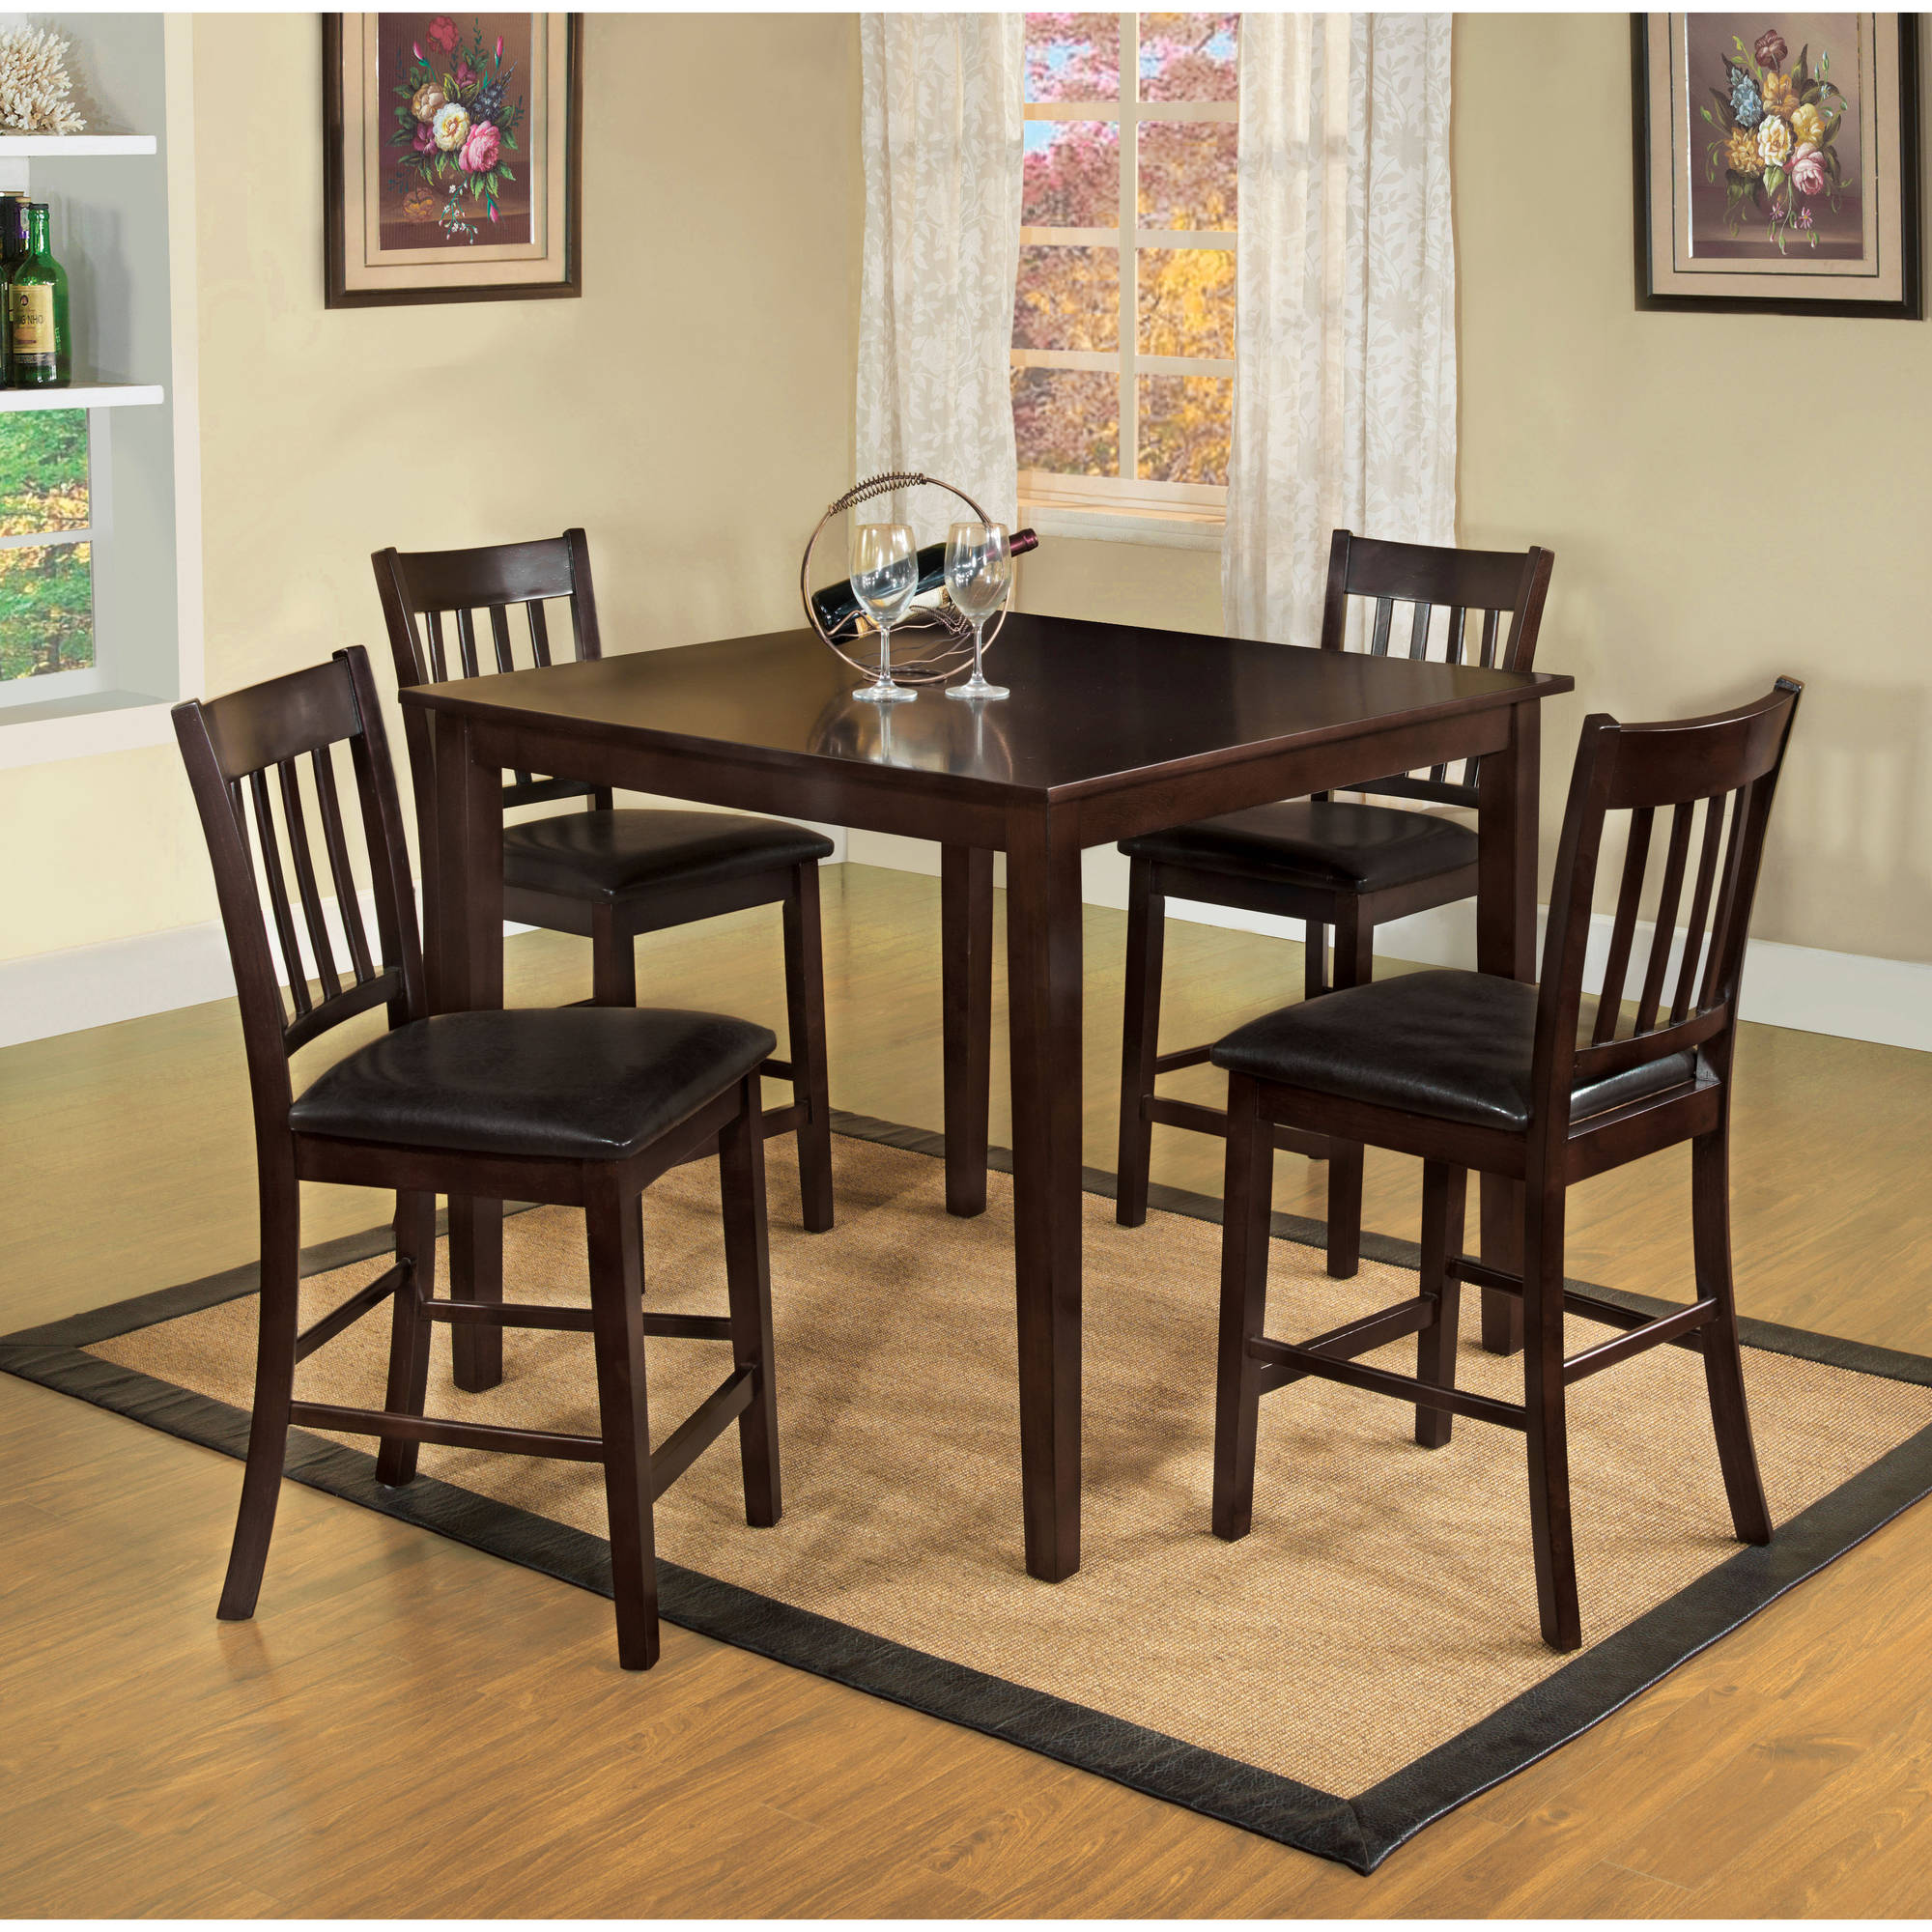 Furniture Of America Joan Transitional 5 Piece Counter Height Dining Set,  Espresso